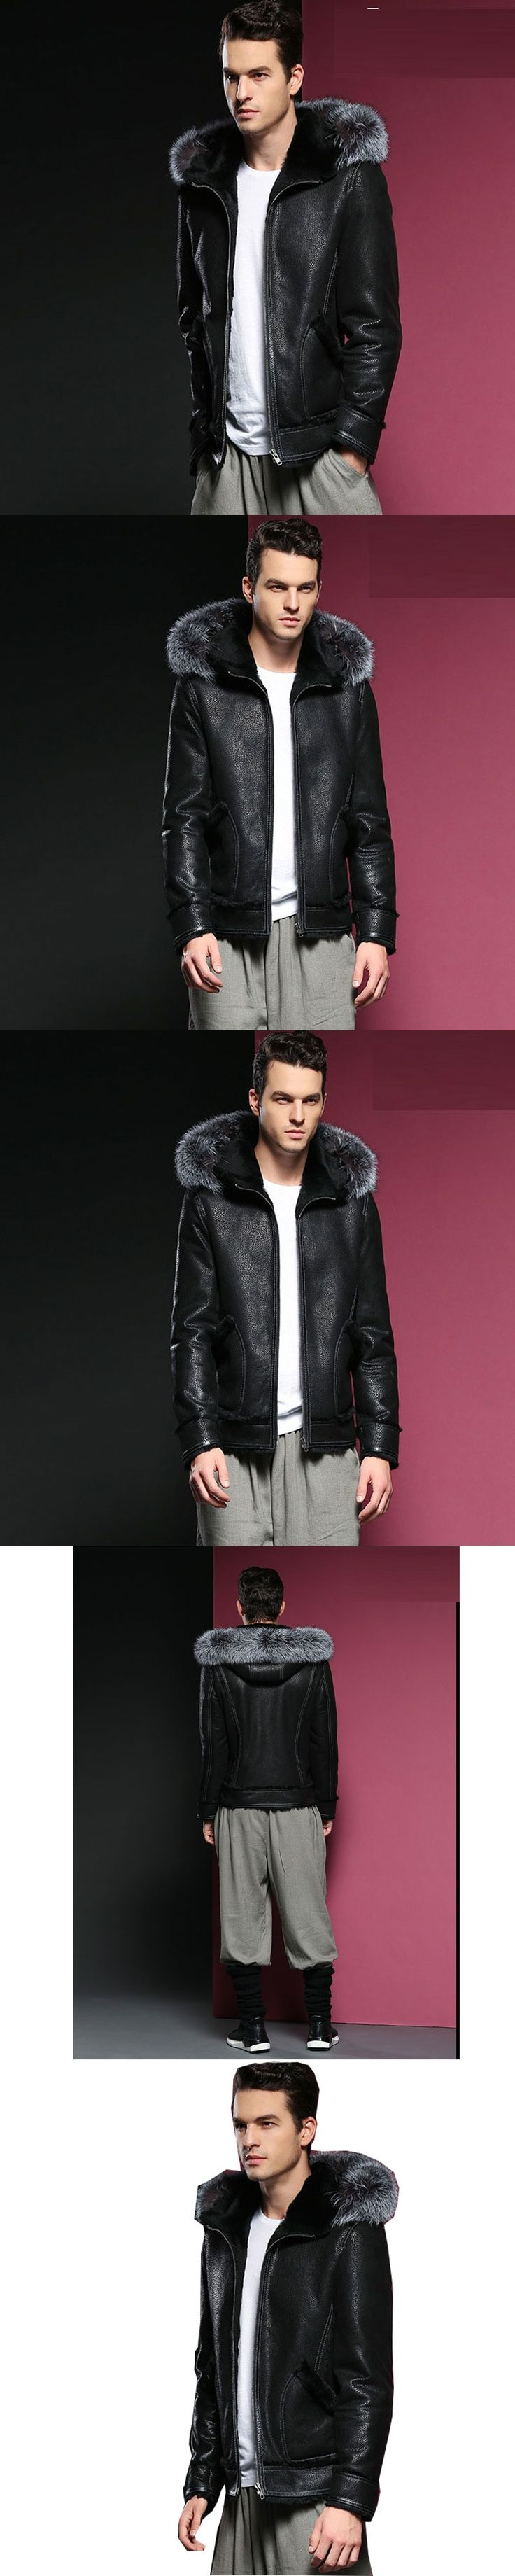 Leather Hooded Sheepskin Jacket Men Coats 3XL Brand High Quality Outerwear Men Business Winter Fur Male Jacket Fleece